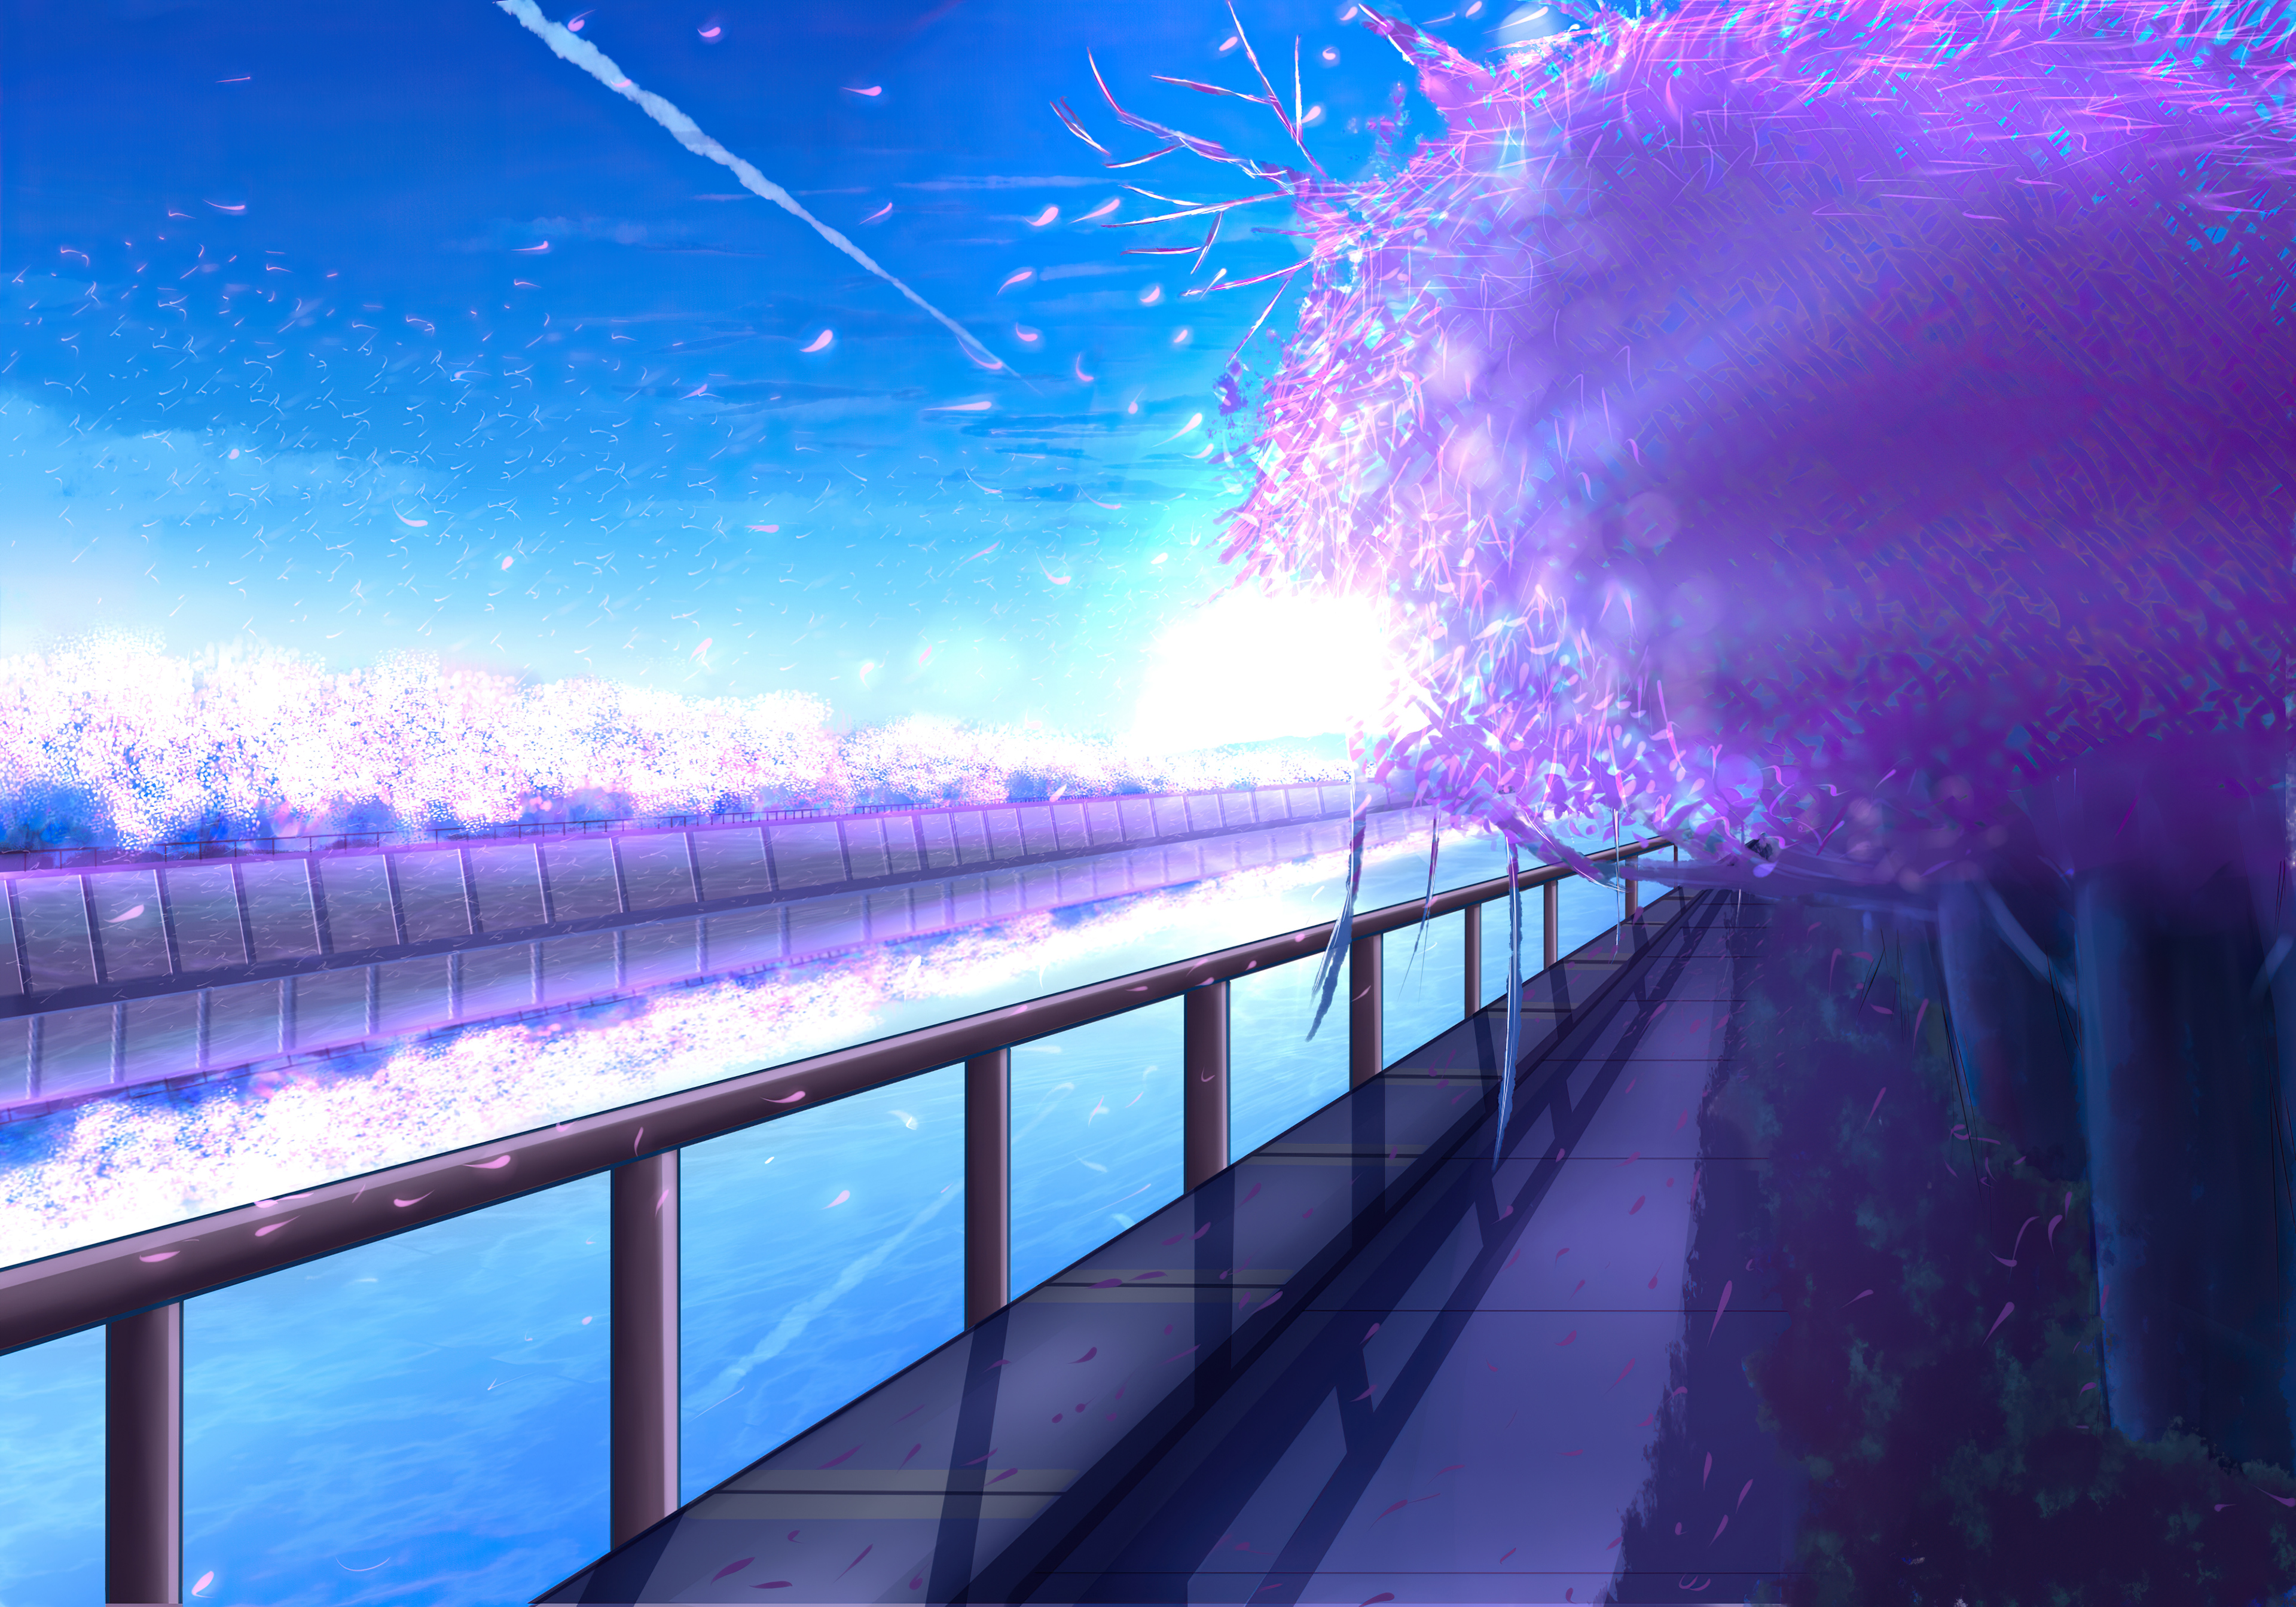 morning on the river anime 4k 1608658609 - Morning On The River Anime 4k - Morning On The River Anime 4k wallpapers